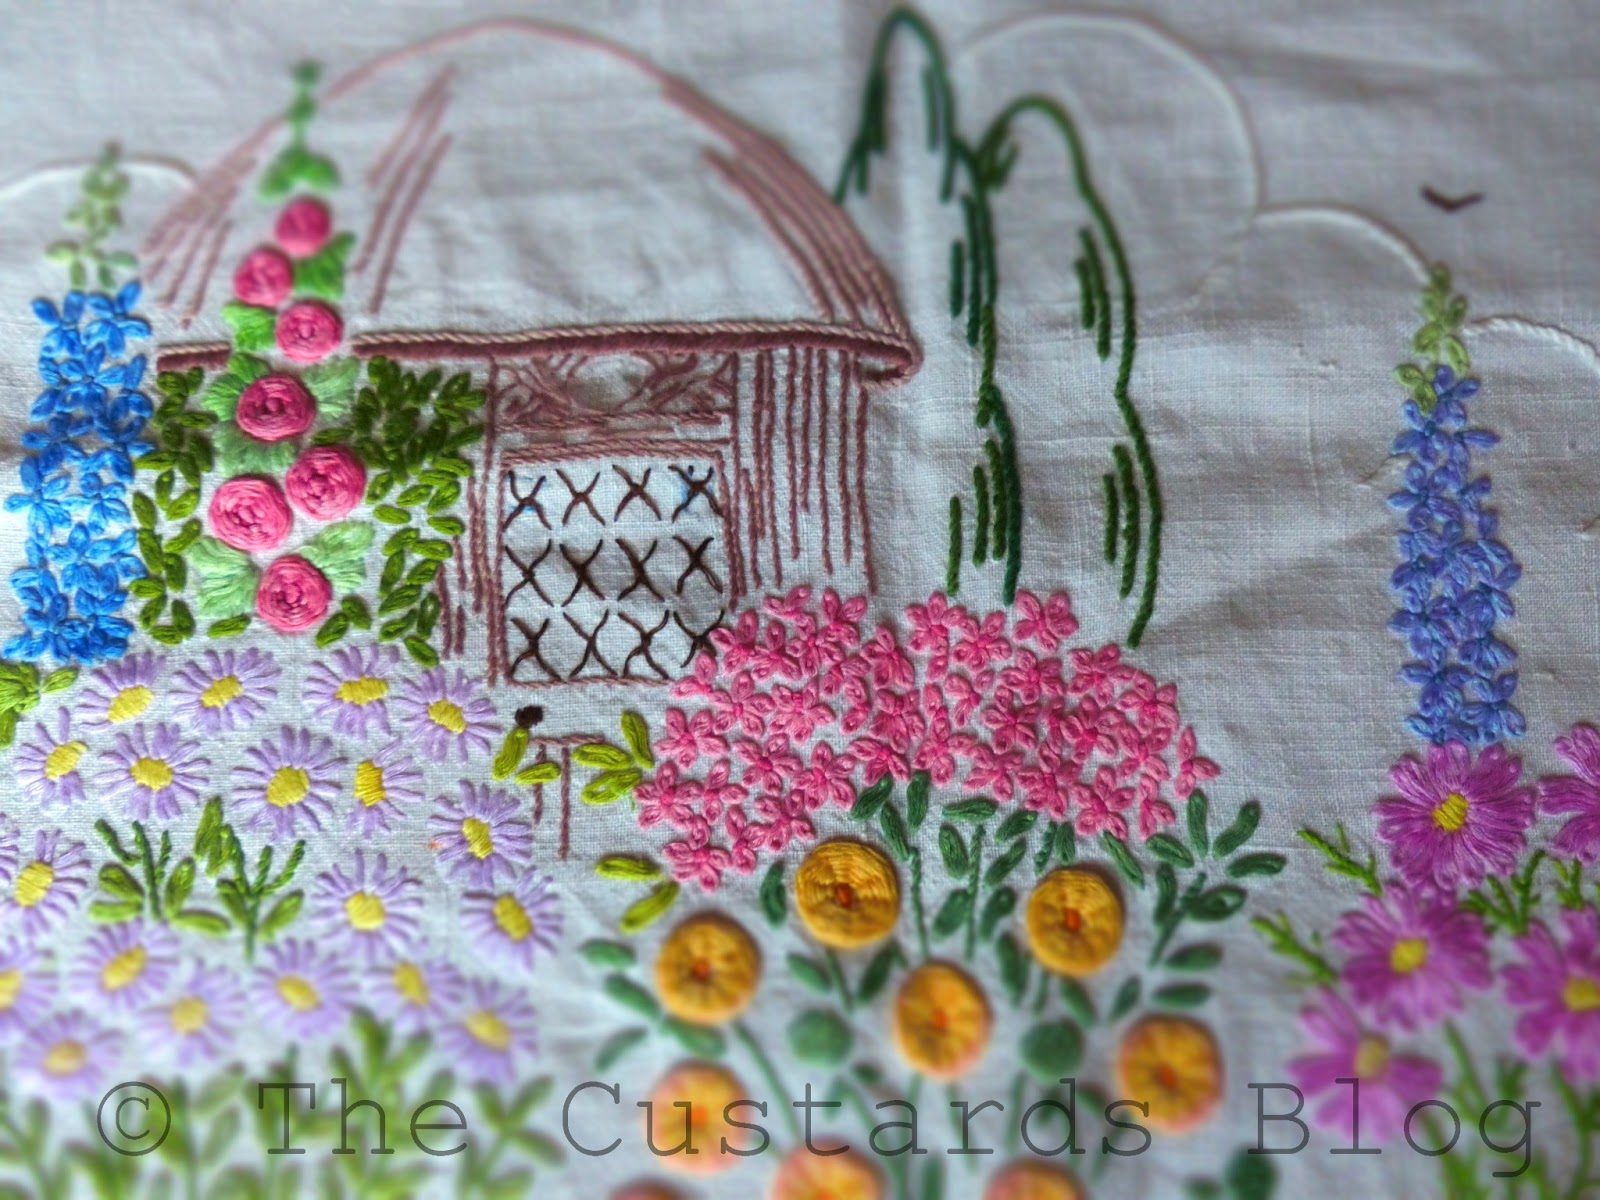 Outline embroidery designs for tablecloth -  Tablecloths I Have Some Quirky Printed Ones That I Like Muchly And Some Embroidered Ones That Are Not So Fancy But Have Little Details That I Love